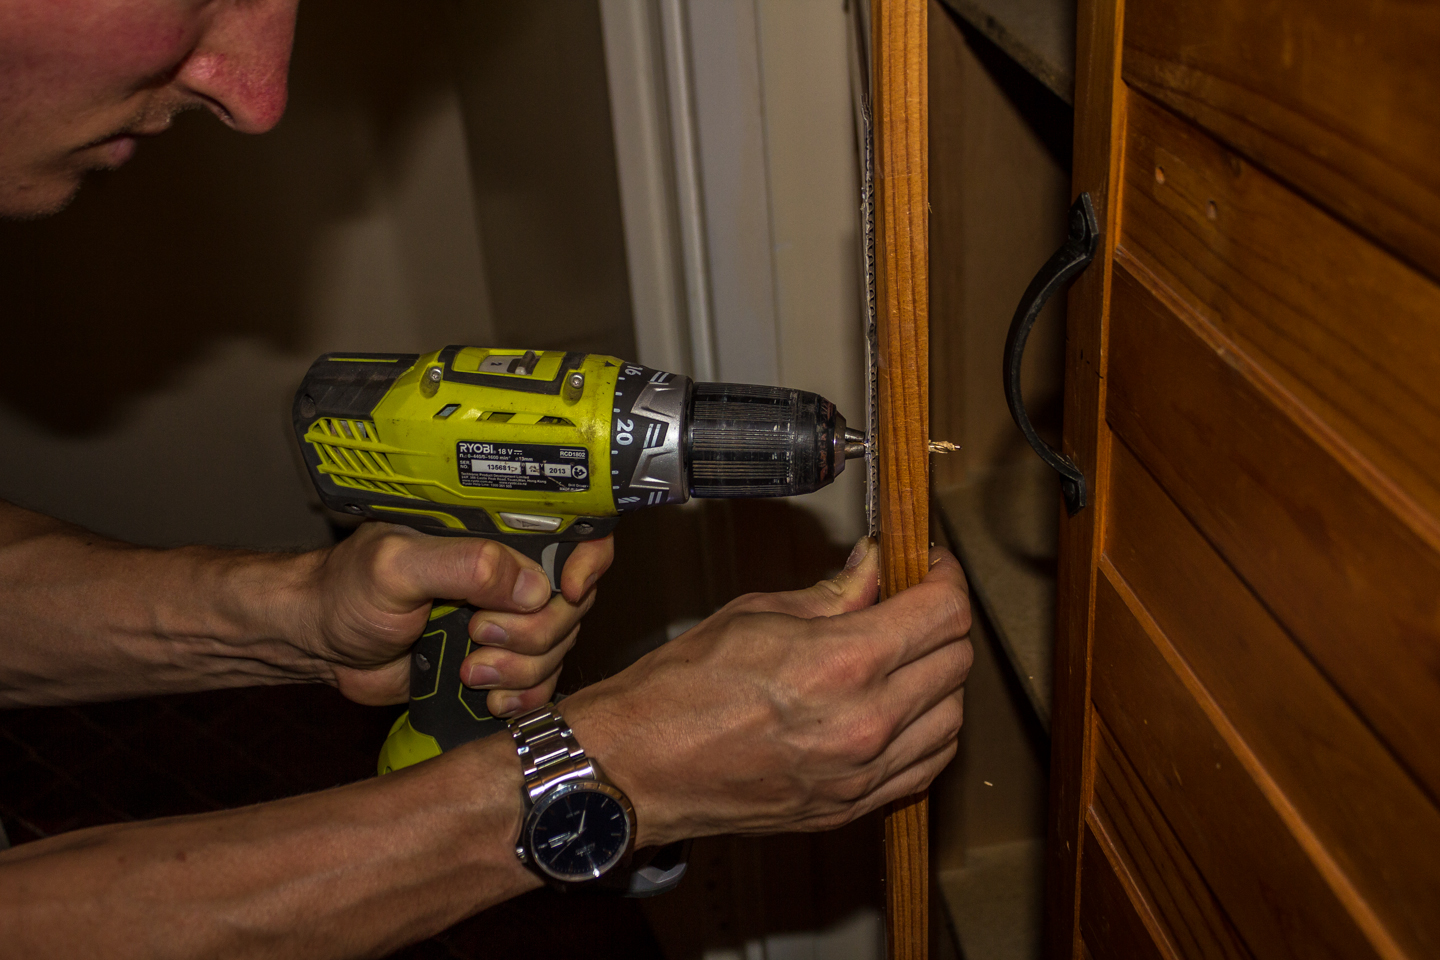 30/12/15 Day 5 [Only time we had available] Hubby drilling a hole in the door using the template